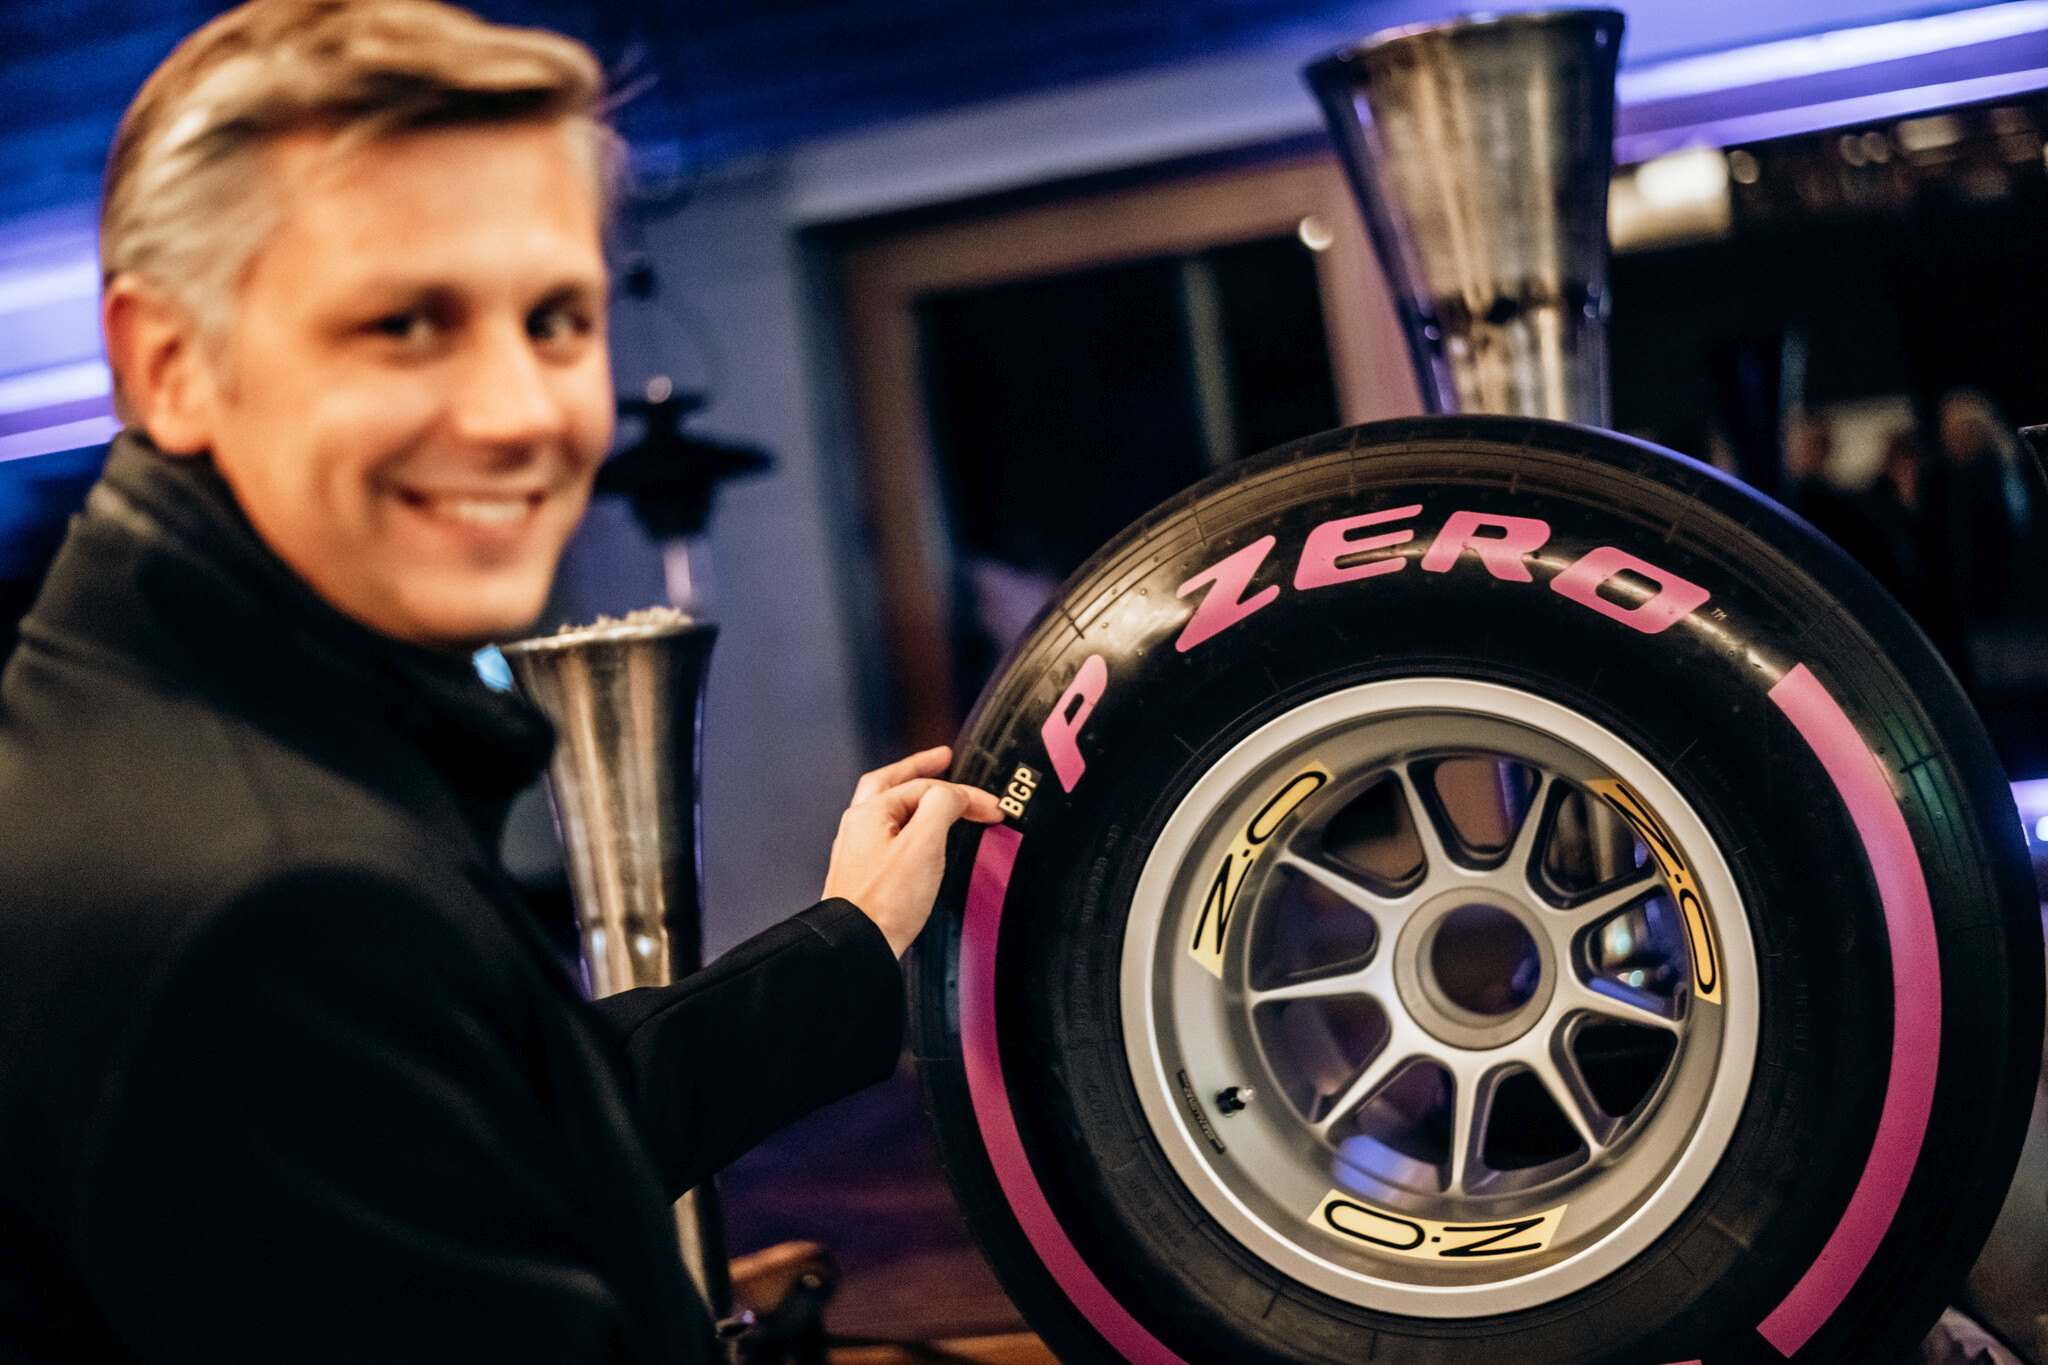 Matteo Braga from Pirelli with the 2020 BOSS GP tyre - Credit Michael Jurtin